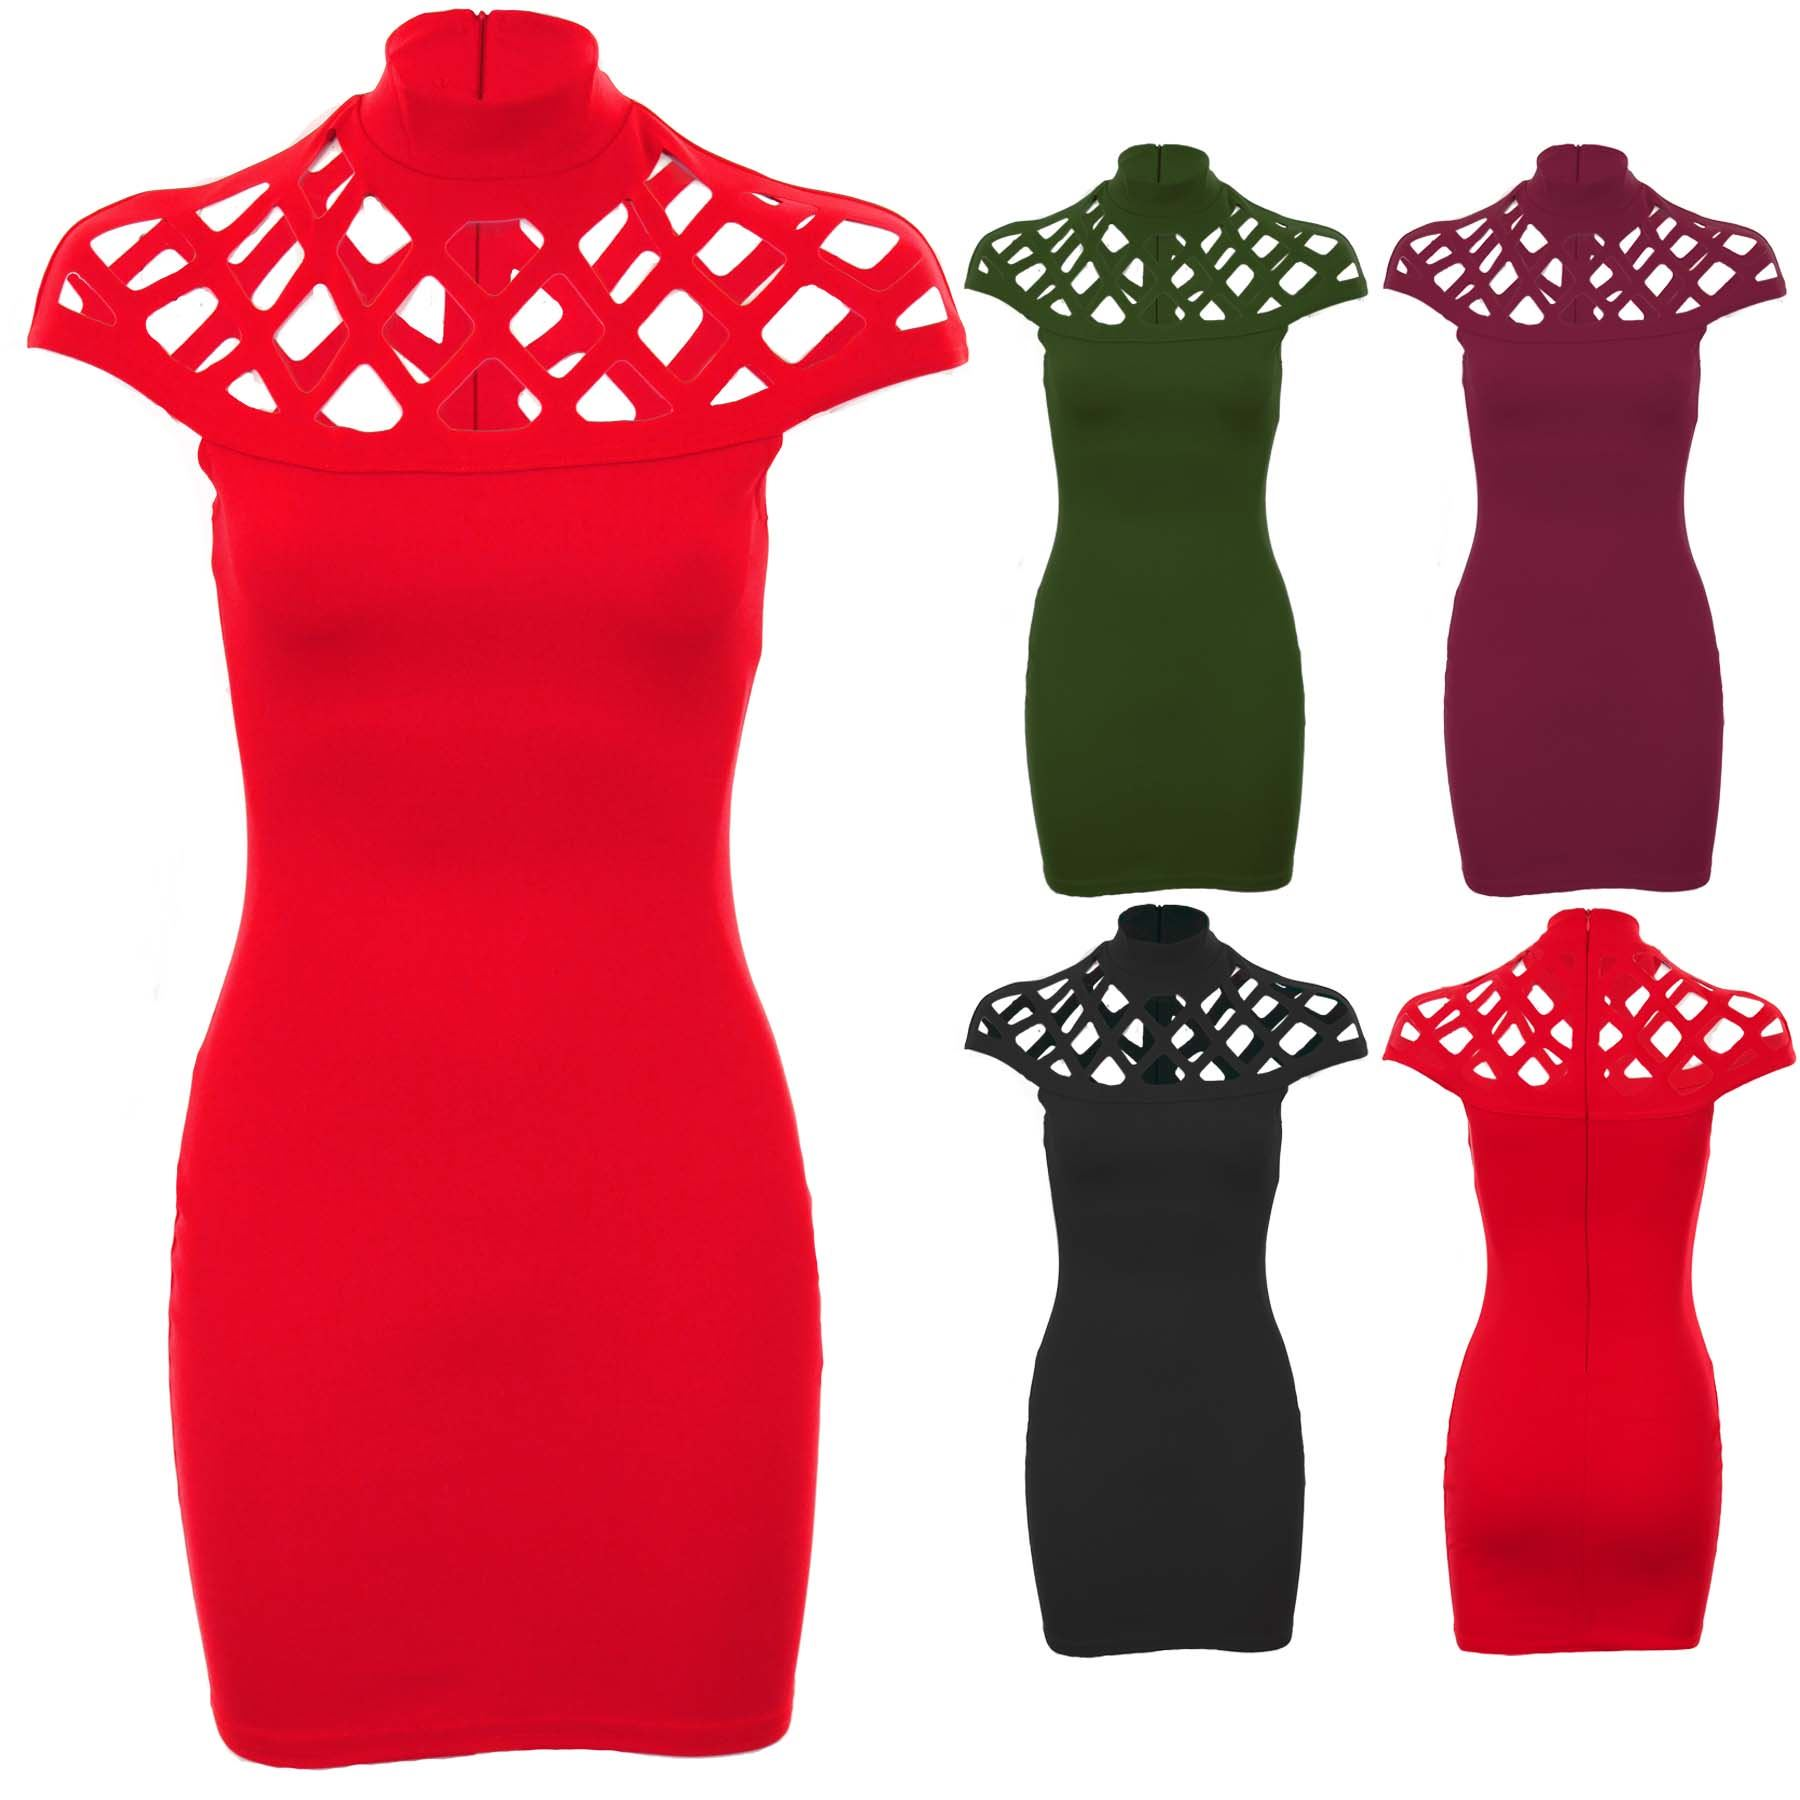 98dfb49822 Details about Ladies Celeb Jemma Caged Laser Cut Out Cap Sleeve Bodycon  High Neck Dress